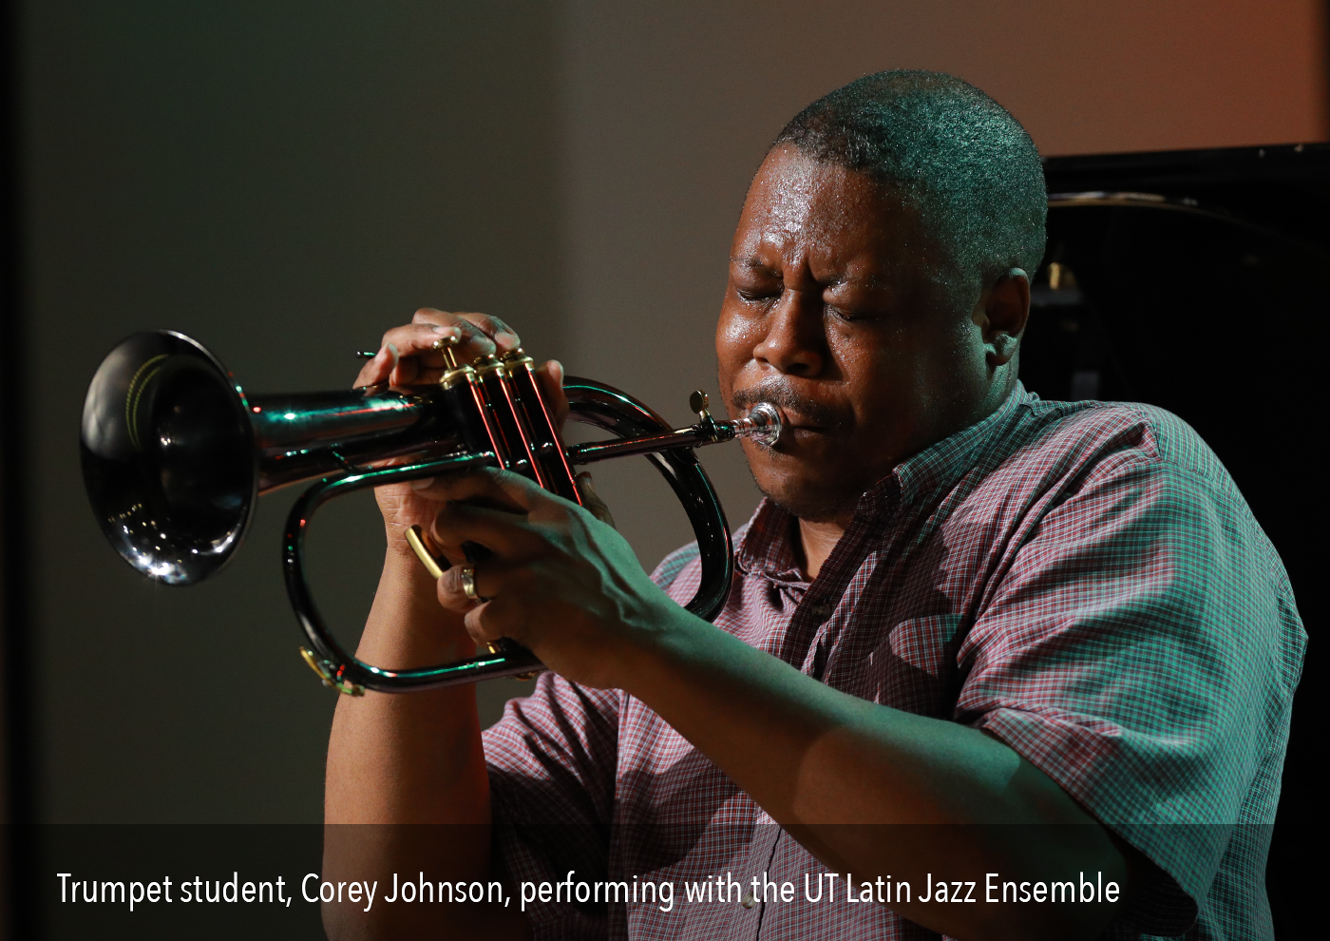 Trumpet student Corey Johnson perforing with the UT Latin Jazz Ensemble